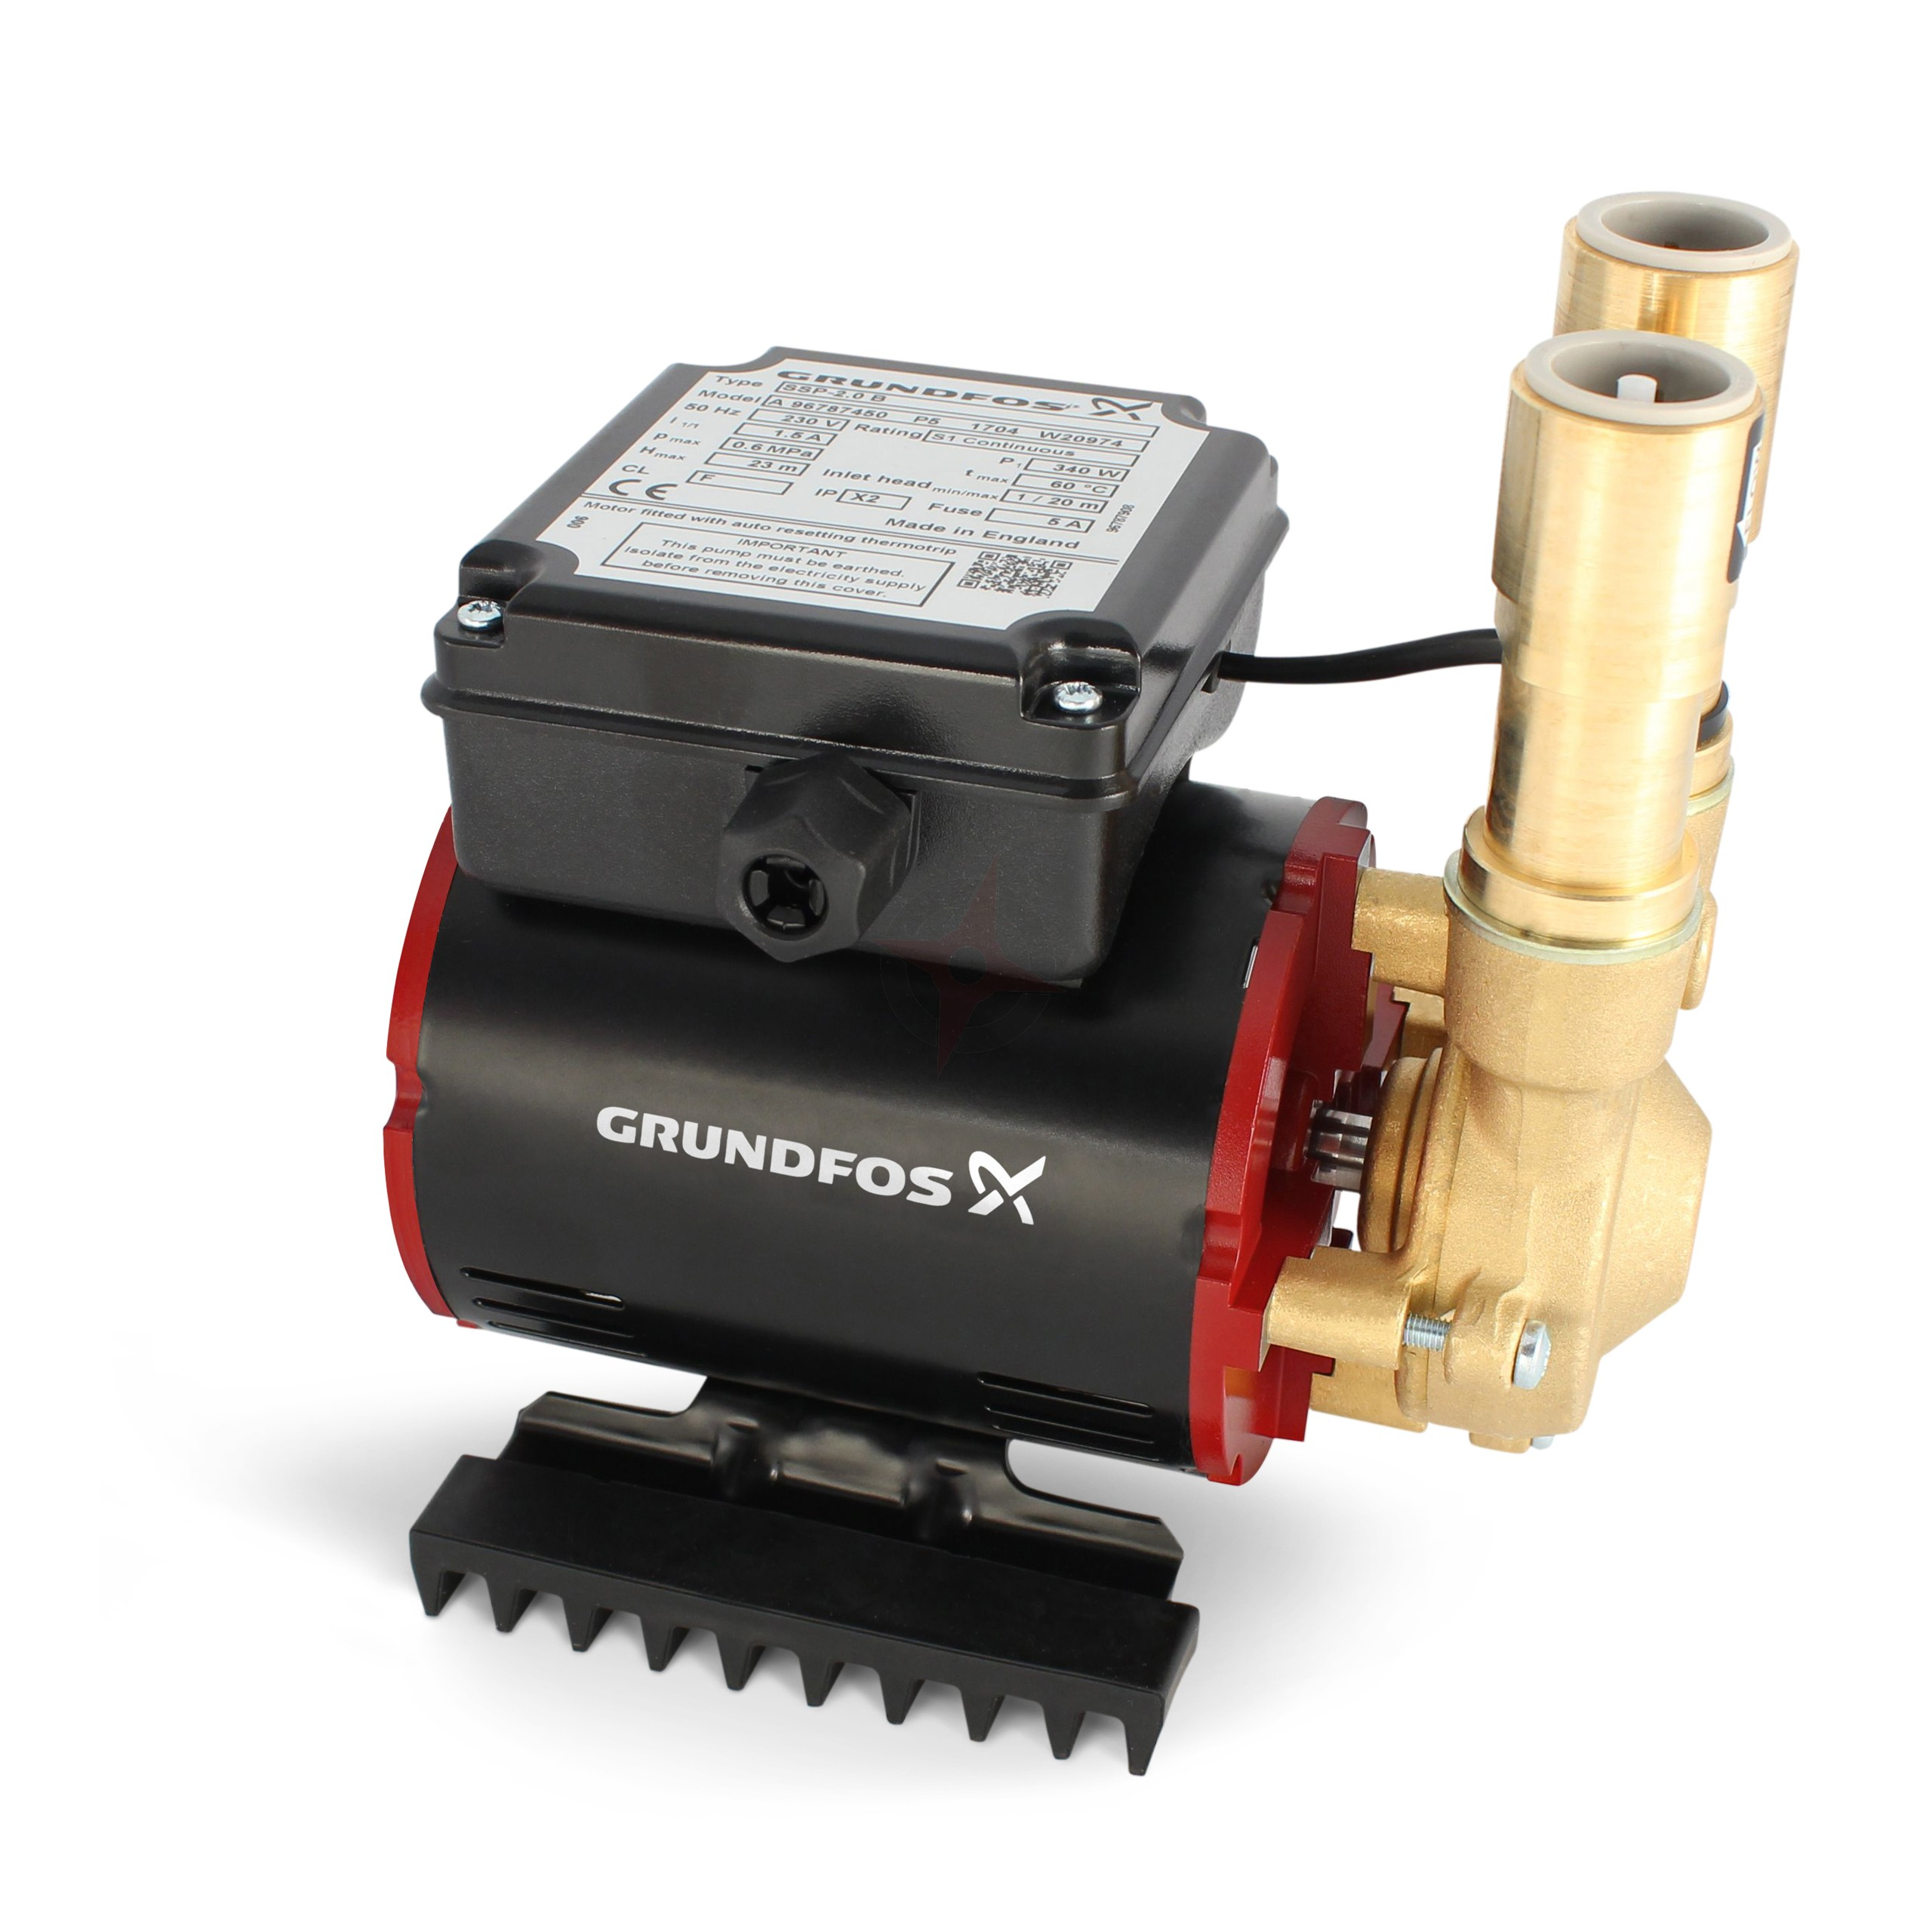 Grundfos Amazon SSP-3.0B Brass Positive 3.0 Bar Single Impeller Shower Pump